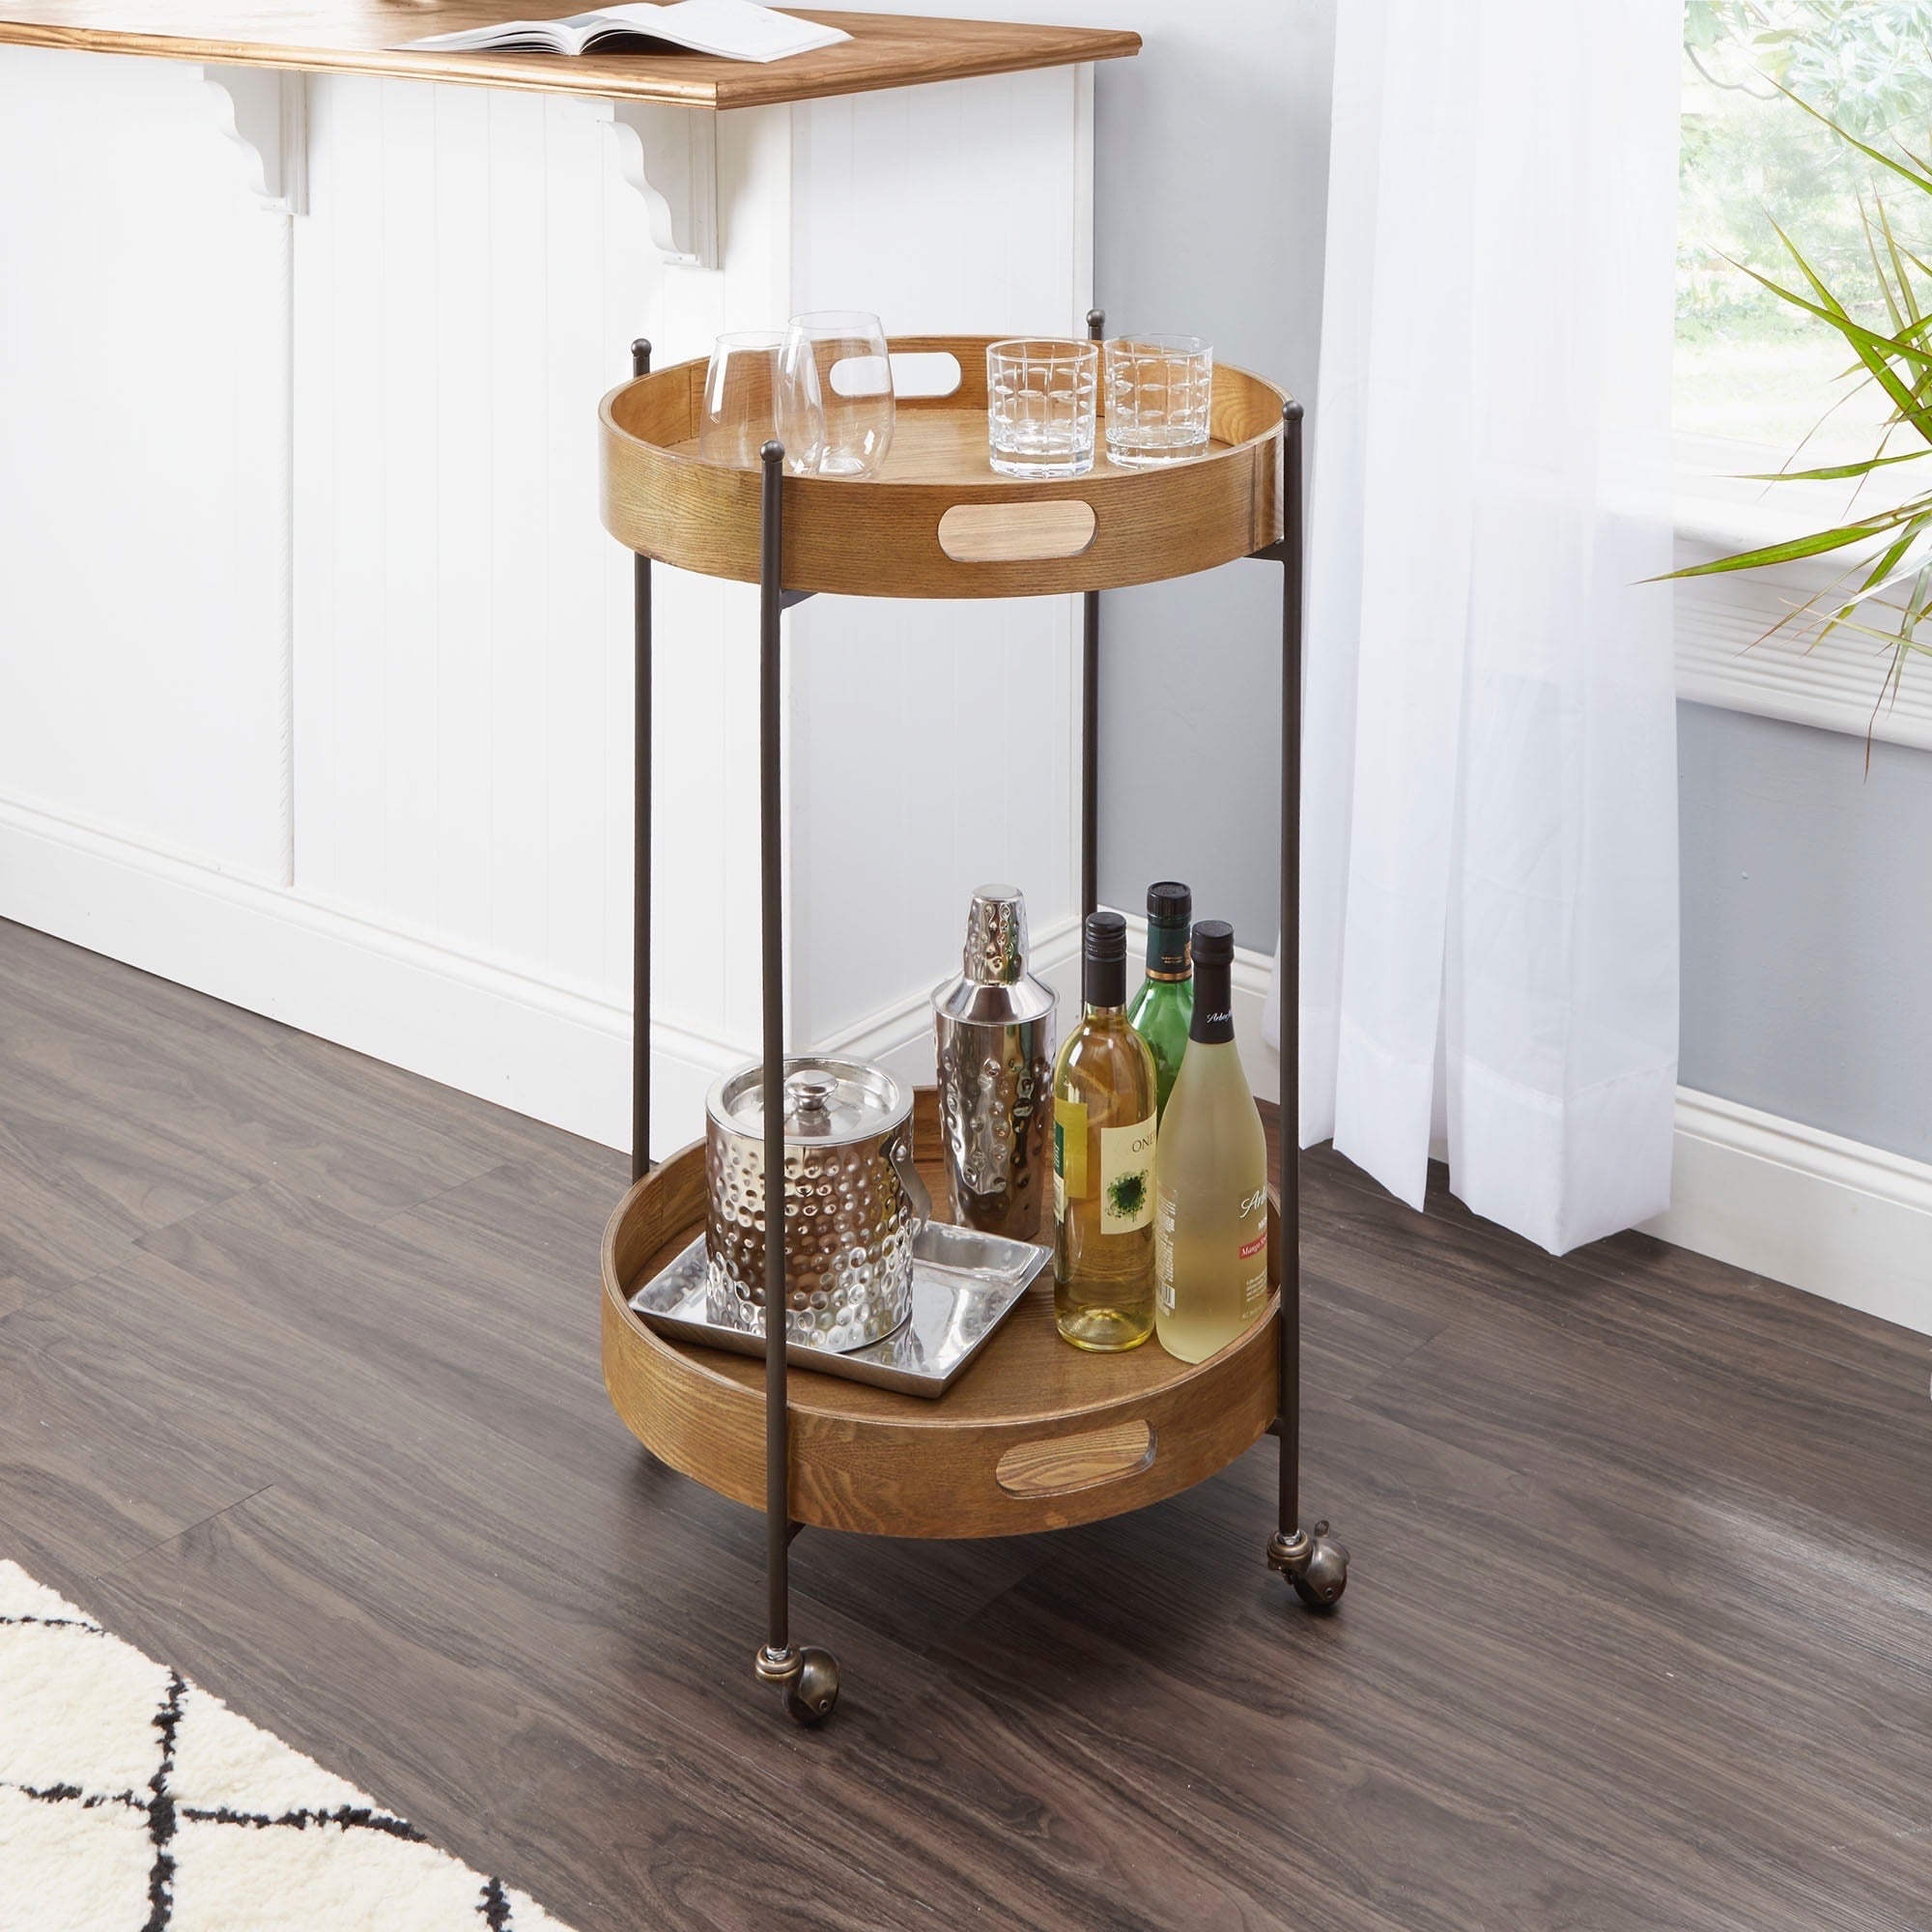 Better Homes And Gardens Round Bar Cart Small Space Furniture From Walmart Popsugar Home Australia Photo 43